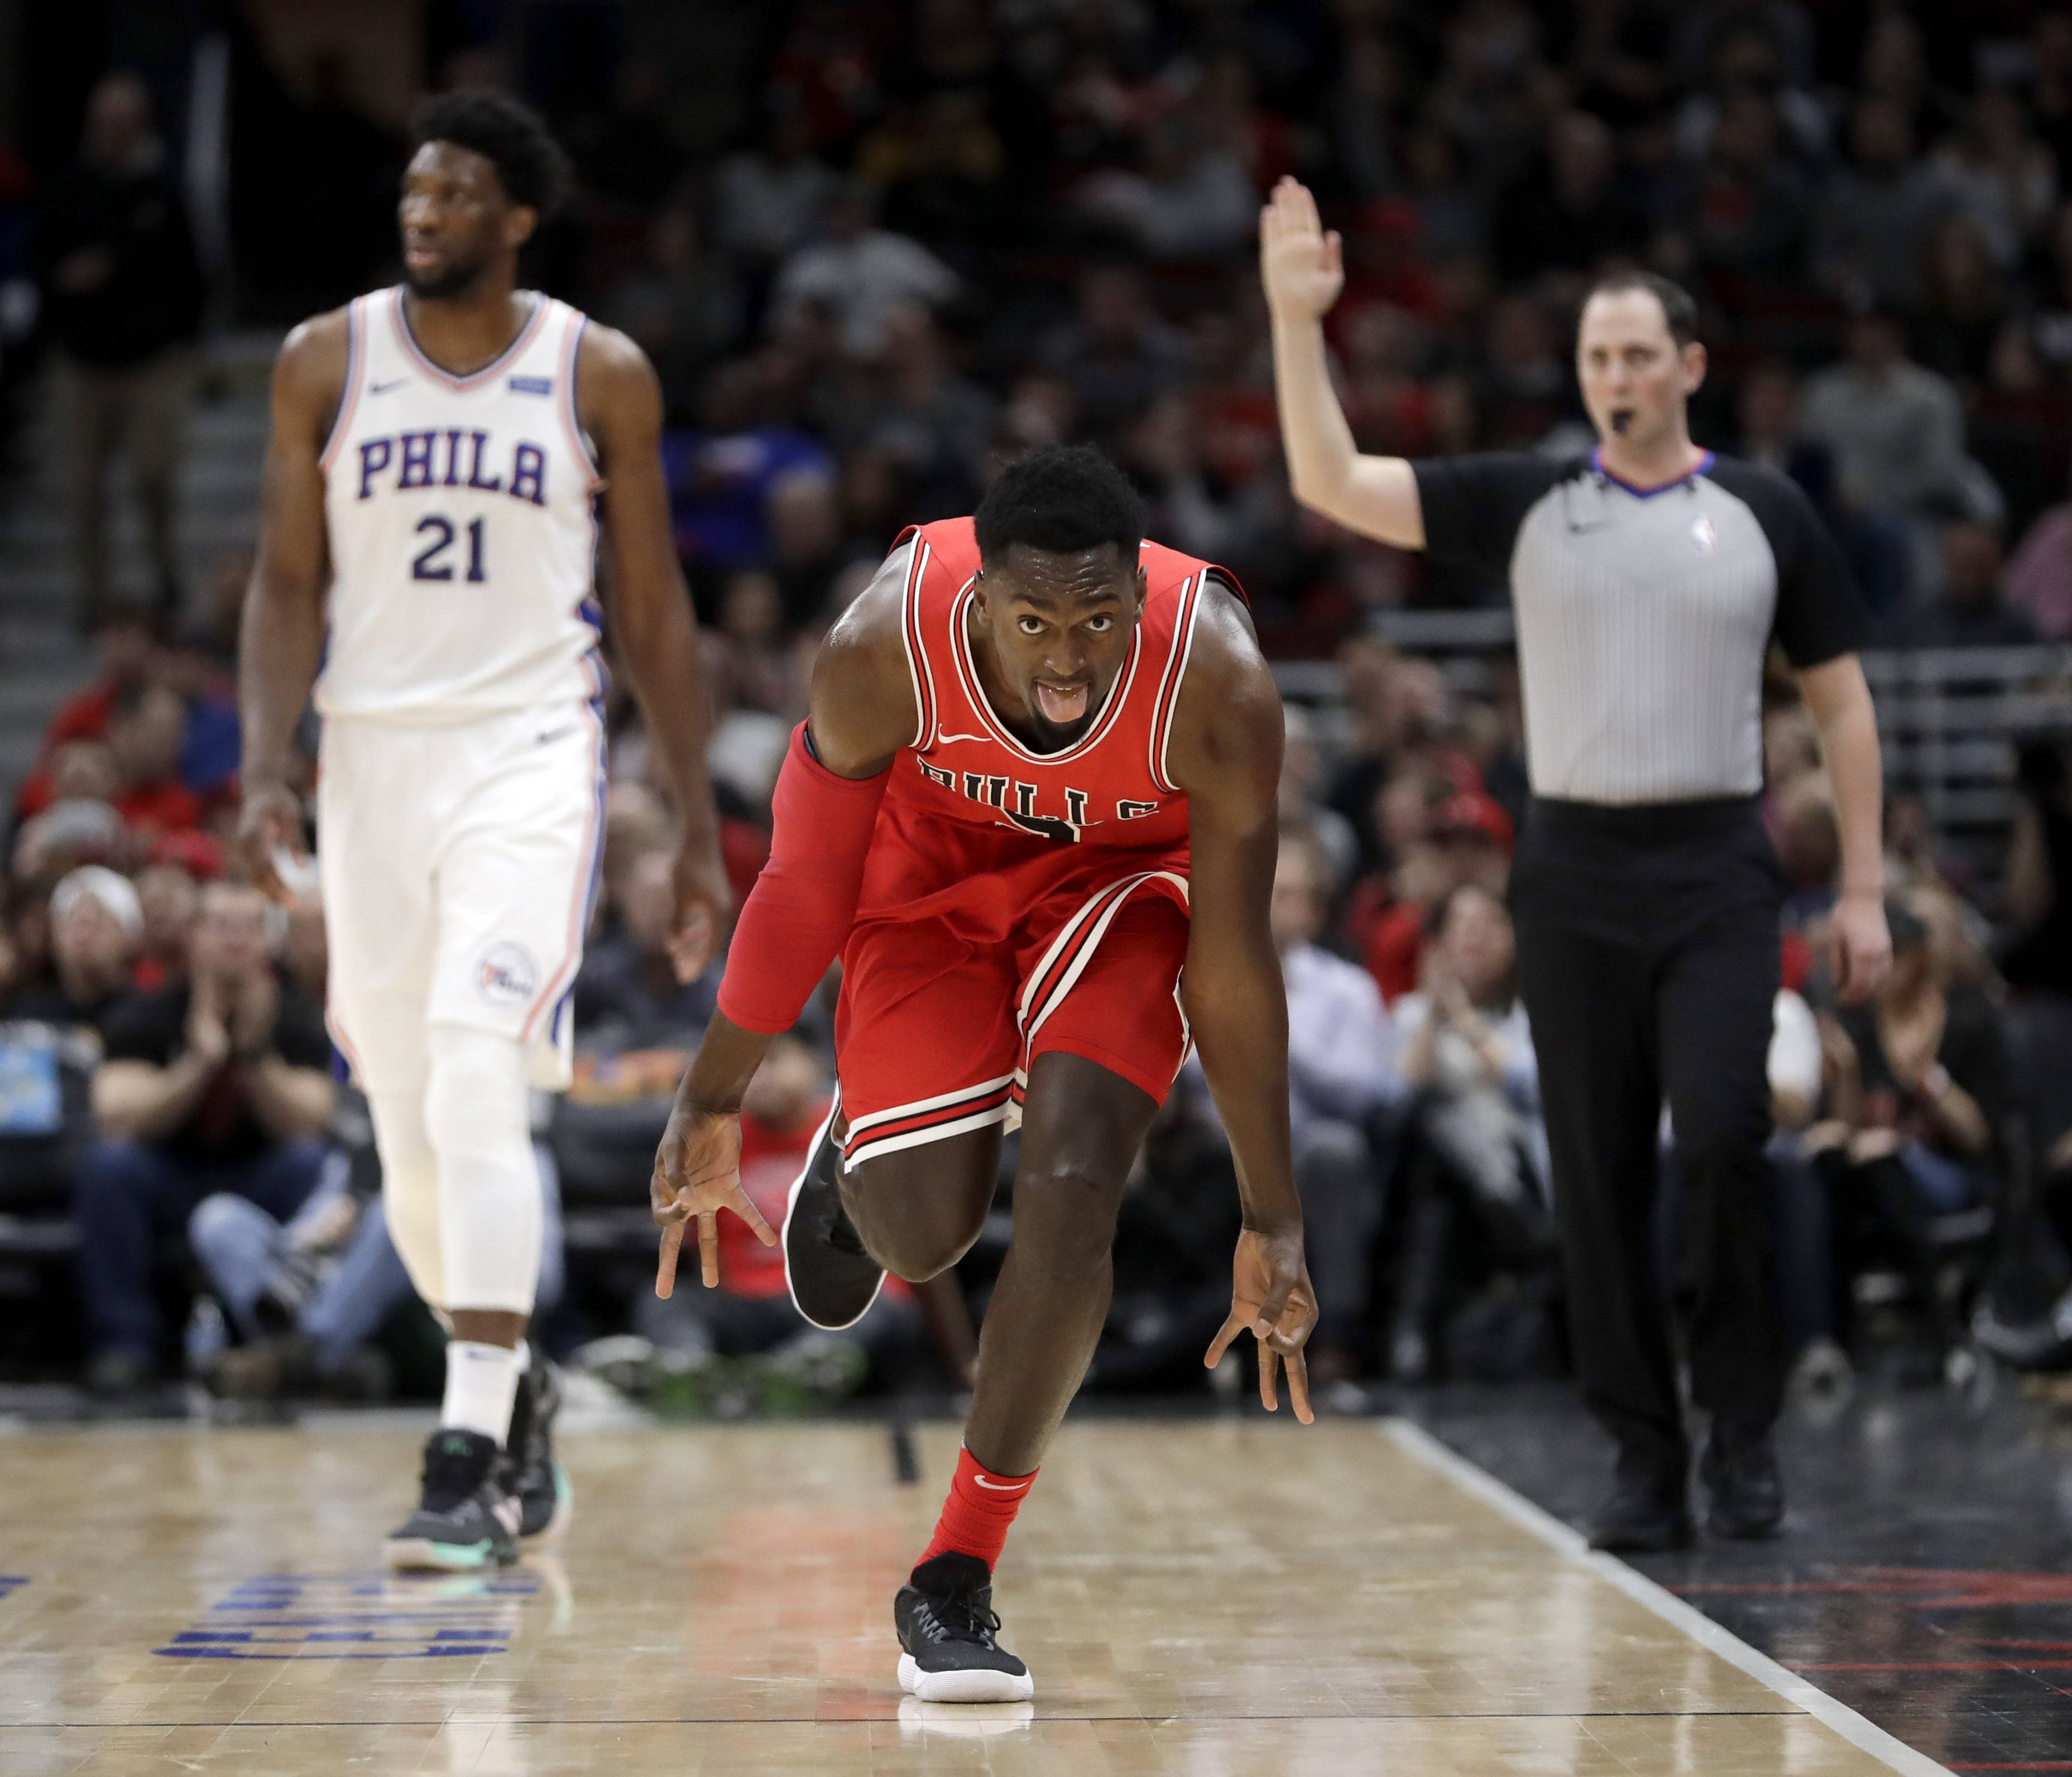 Chicago Bulls' Bobby Portis reacts after scoring a three-point shot over Philadelphia 76ers' Joel Embiid, left, during the first half of an NBA basketball game Thursday, Feb. 22, 2018, in Chicago. (AP Photo/Charles Rex Arbogast)